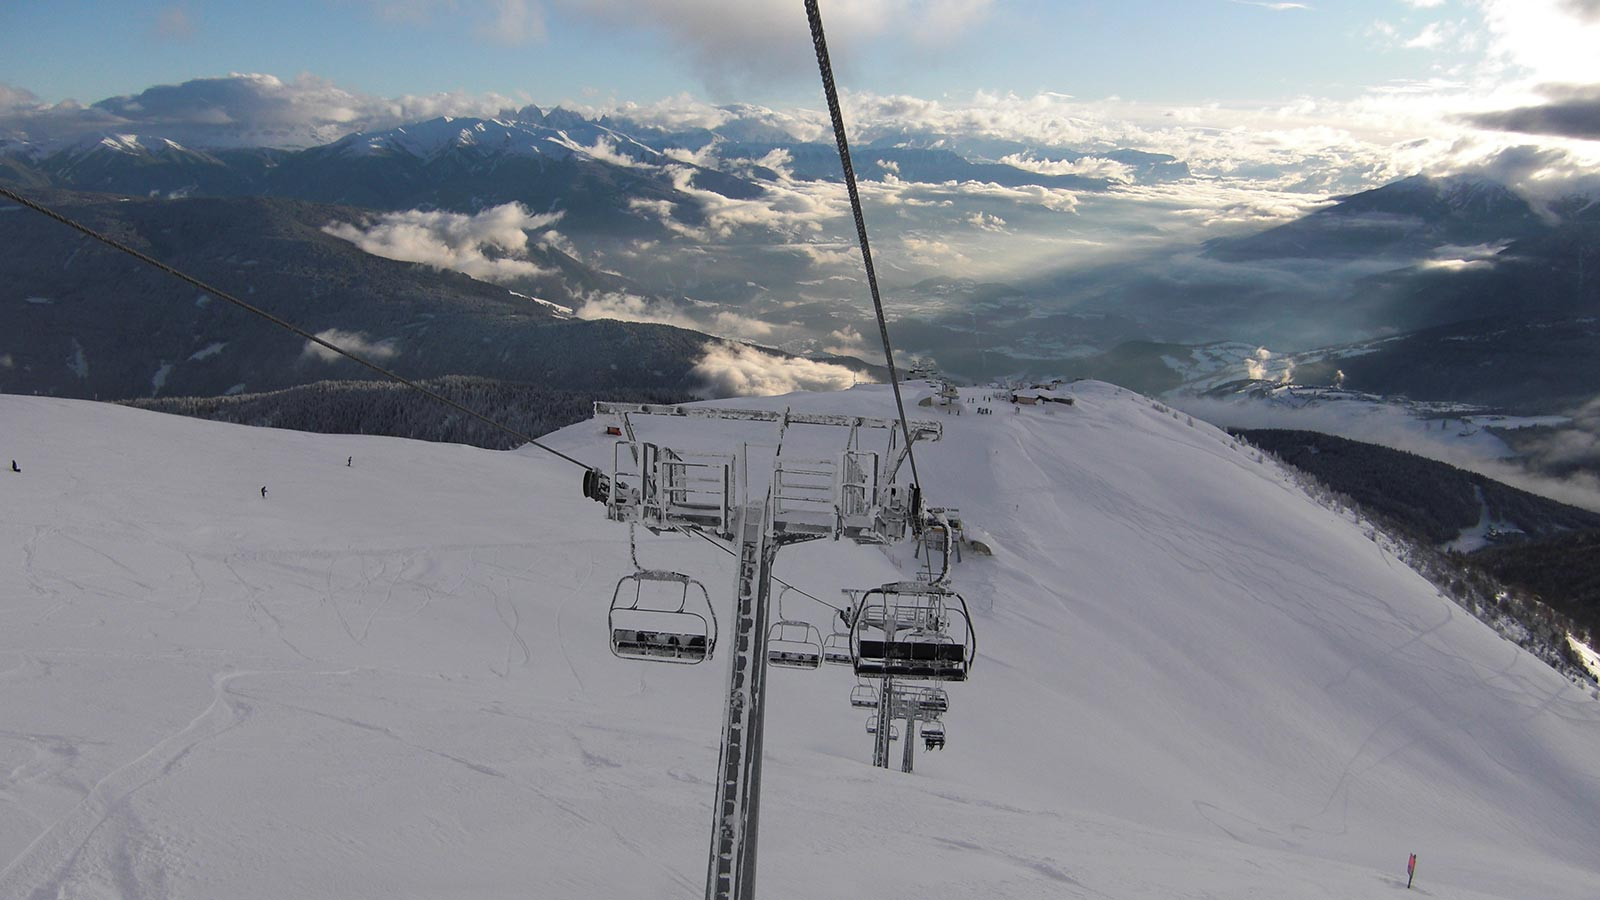 Chair lift in the area of the Gitschberg-Jochtal in winter with lots of snow around